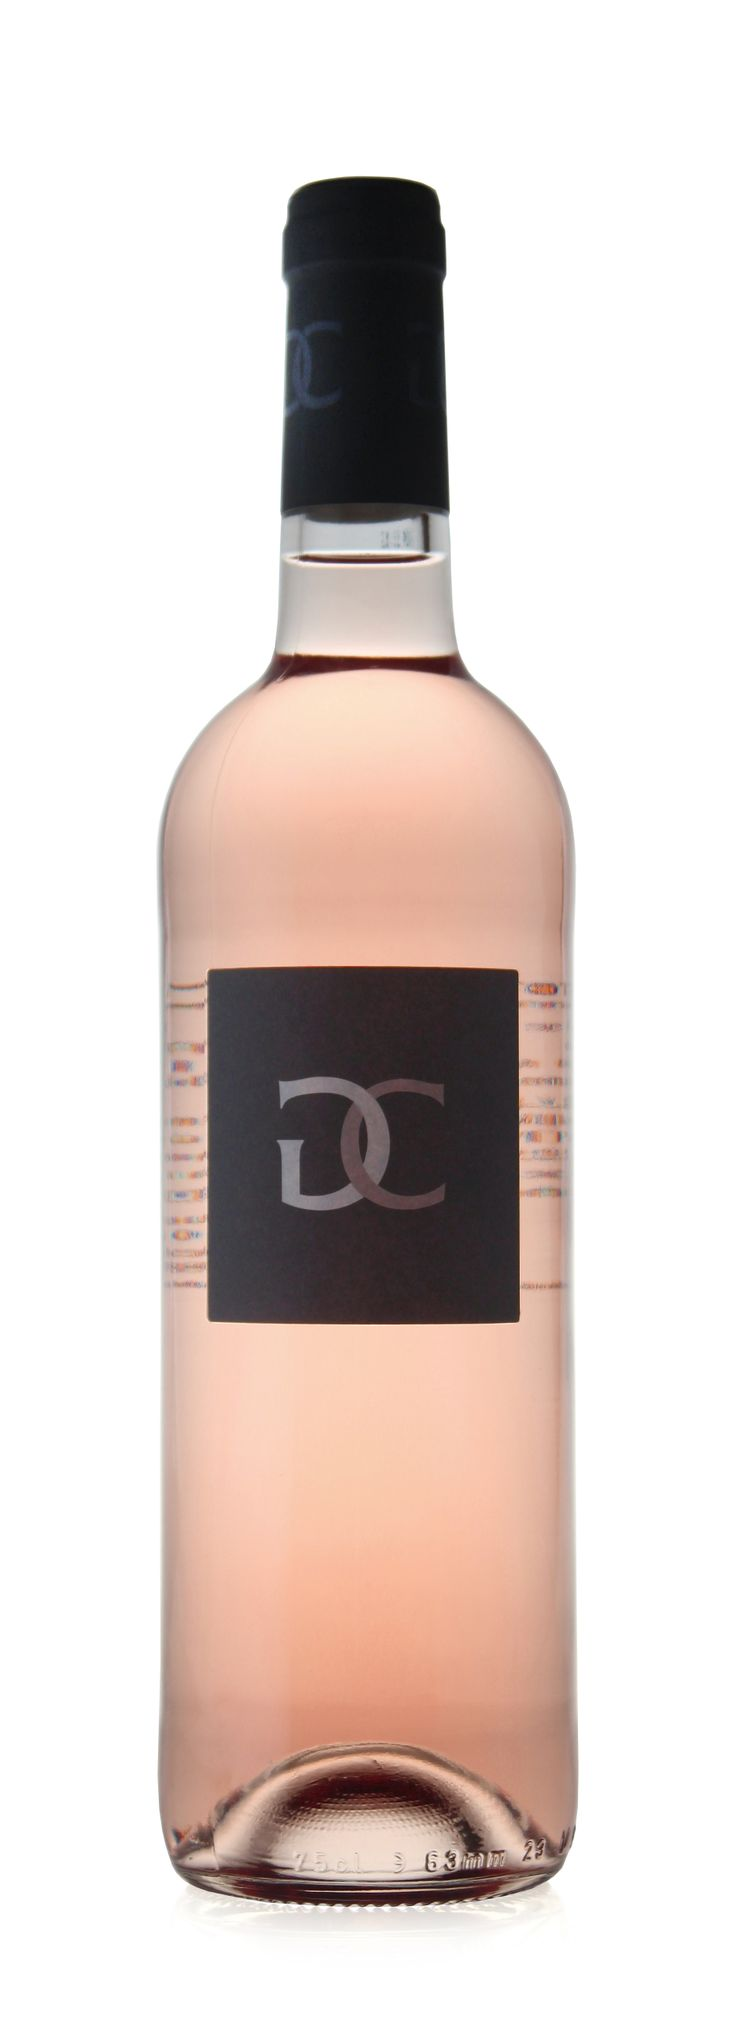 New packaging for Domaine du Grand Cros rosé launched feb 2014.